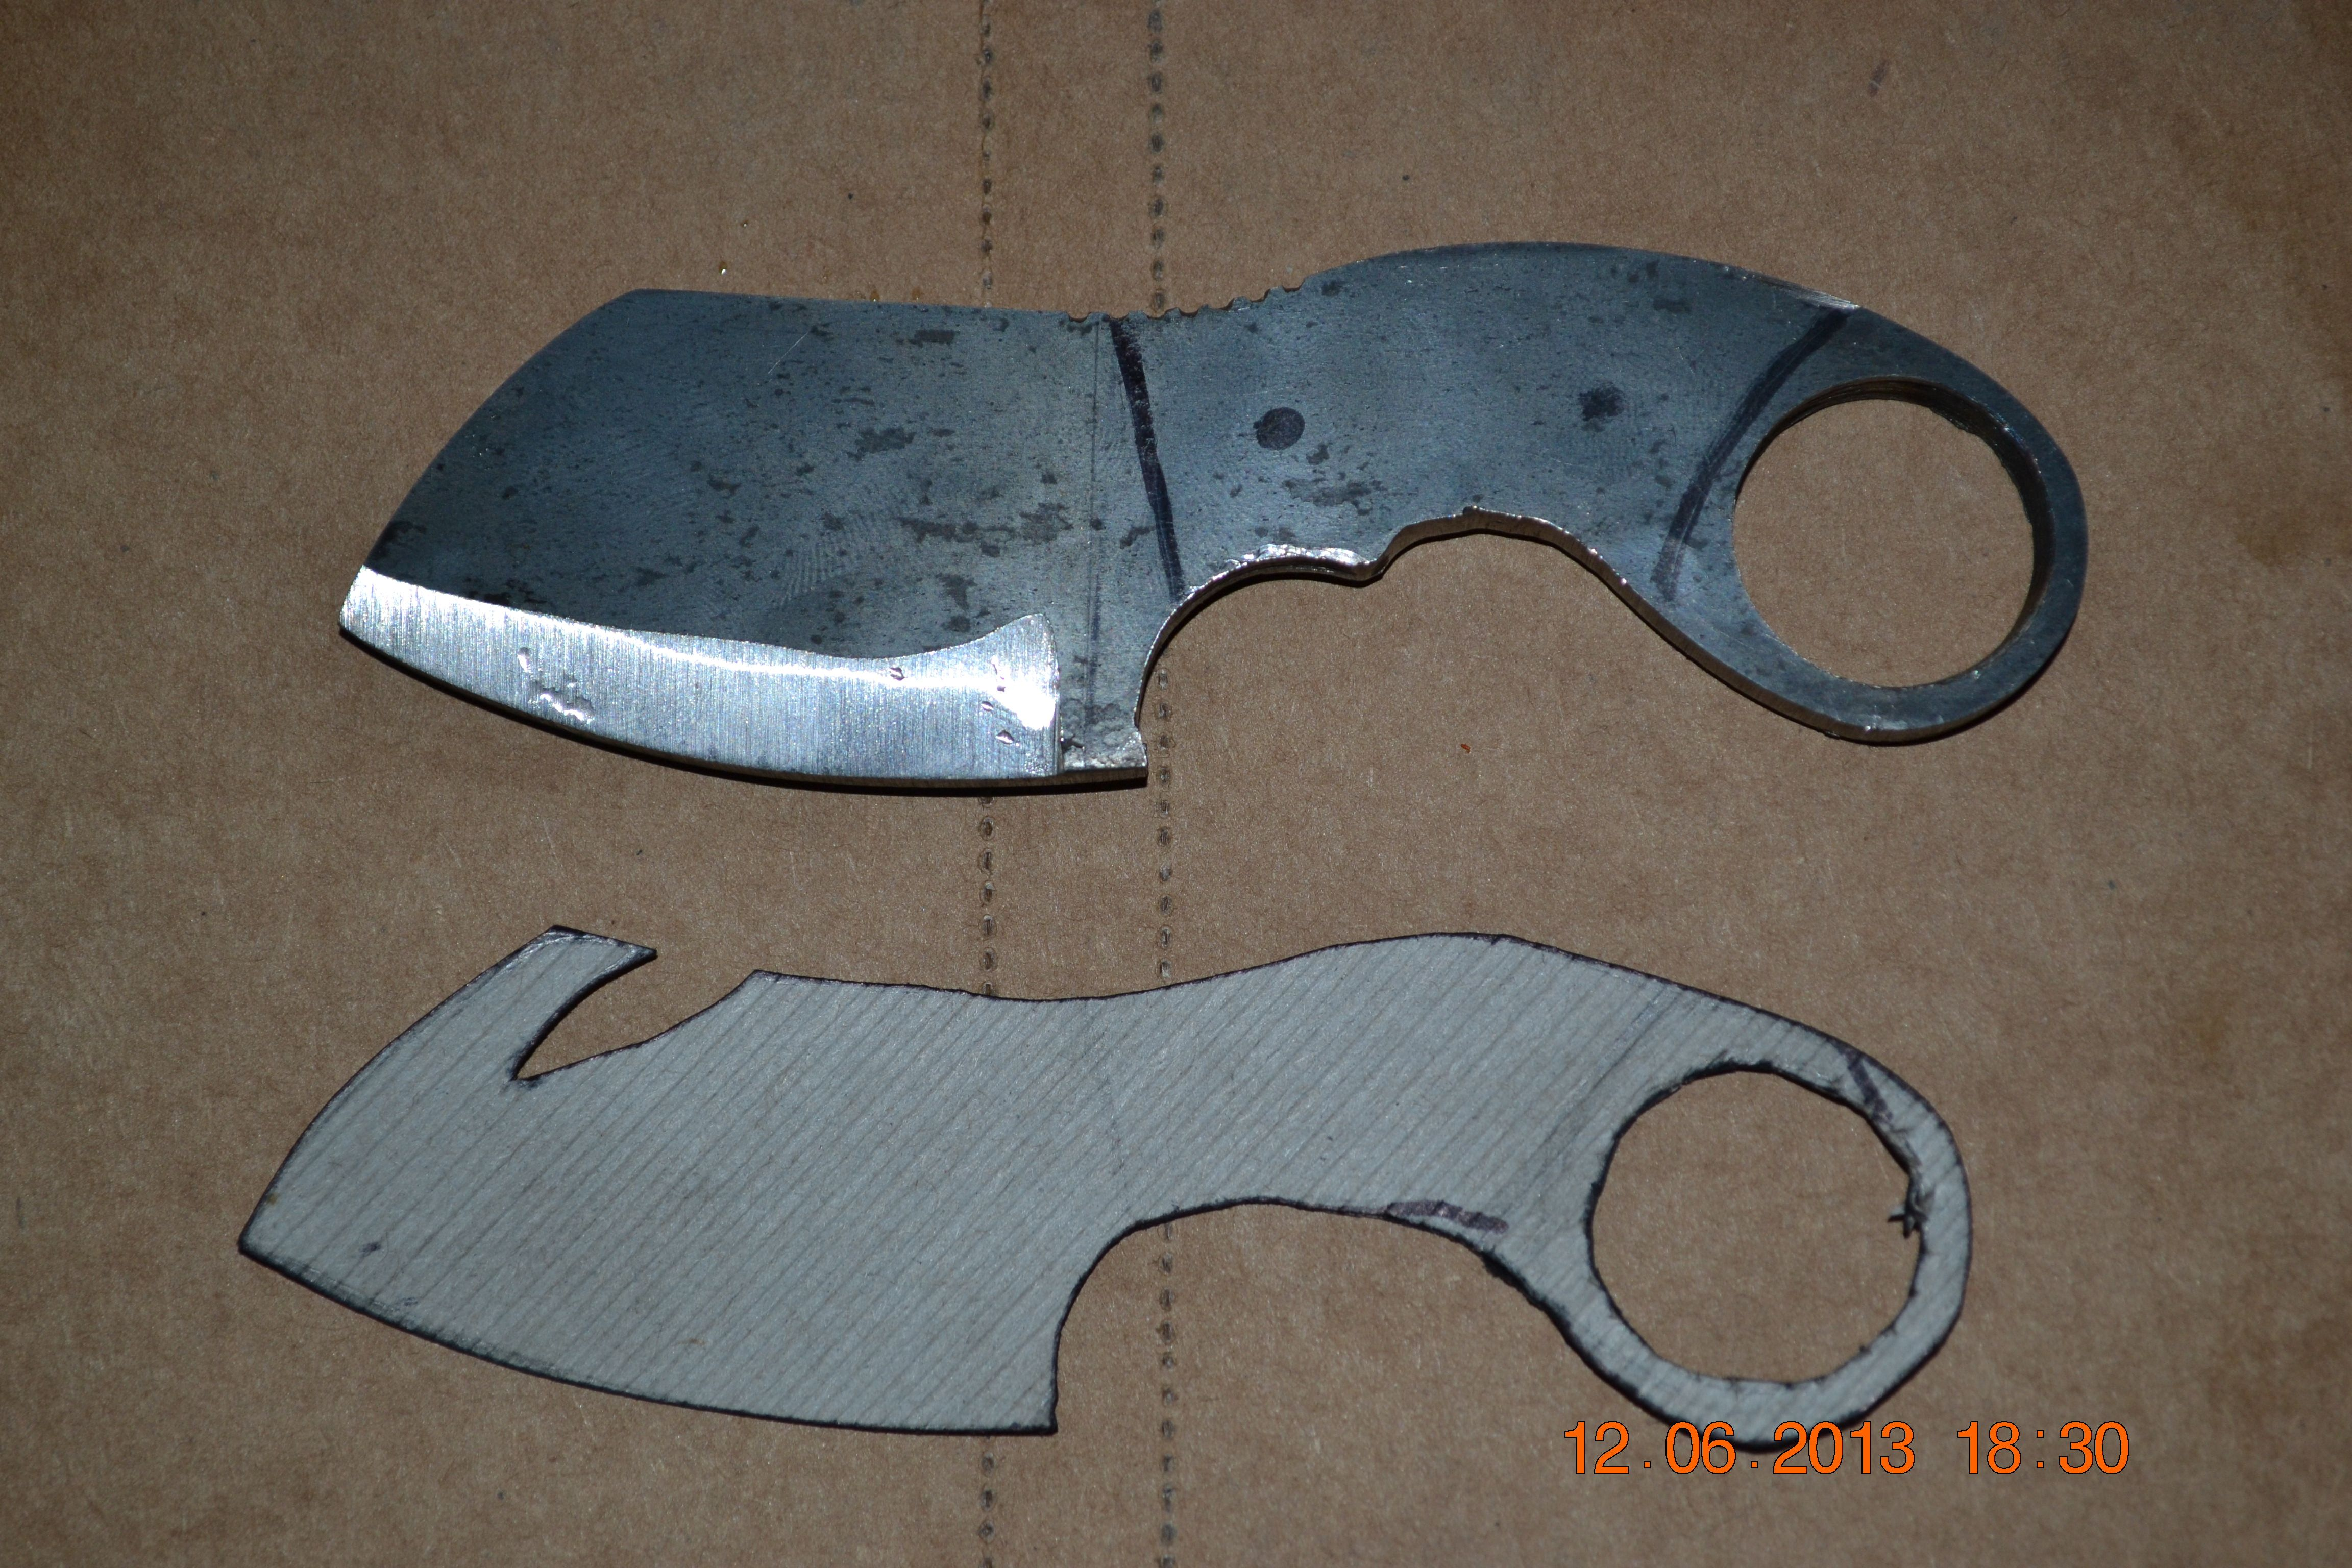 Firt Knife Advice And Opinions Needed Beginners Place Knife Knife Template Knife Patterns